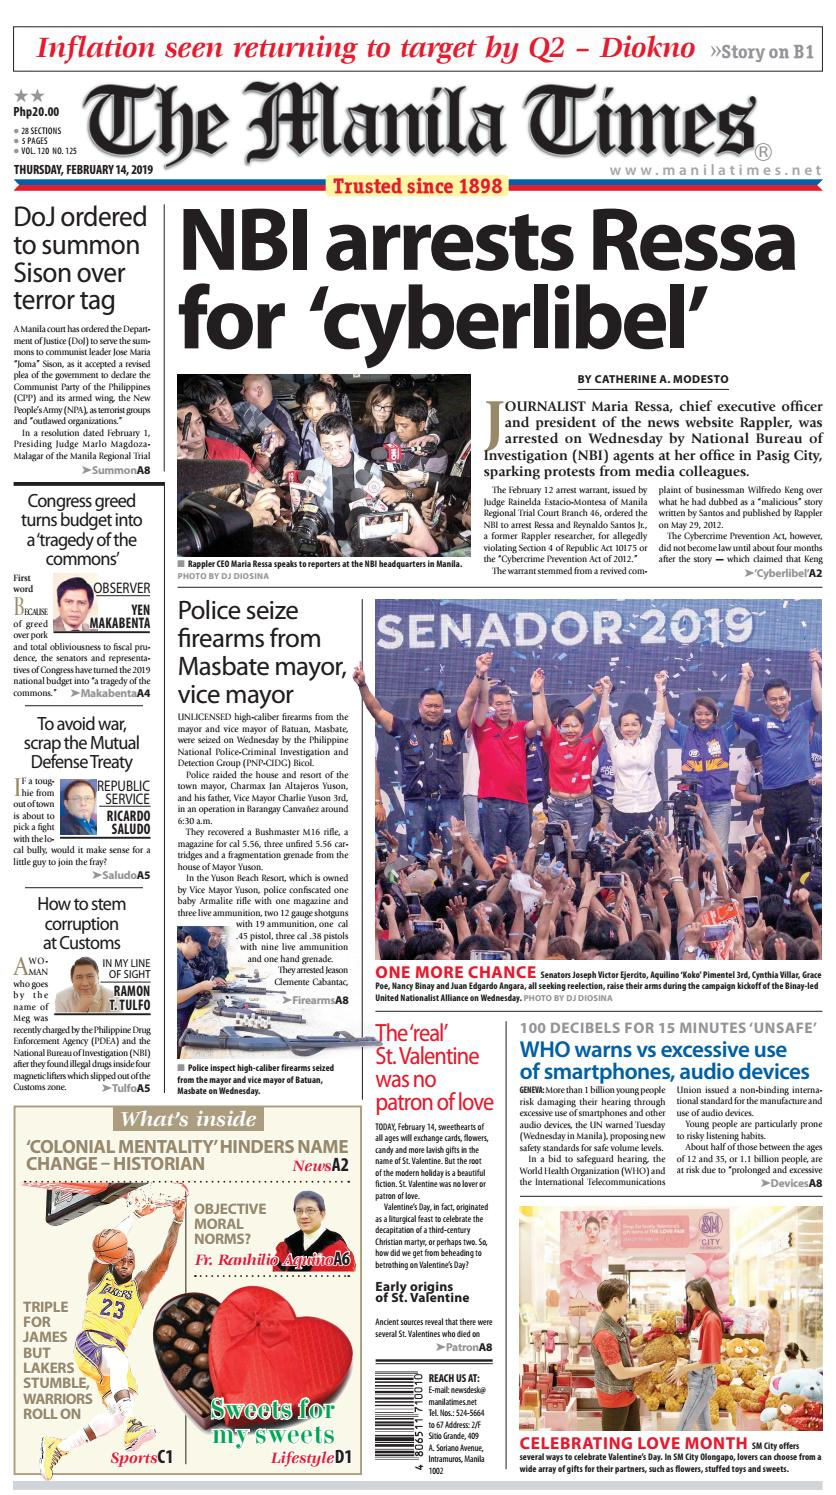 THE MANILA TIMES | FEBRUARY 14, 2019 by The Manila Times - issuu